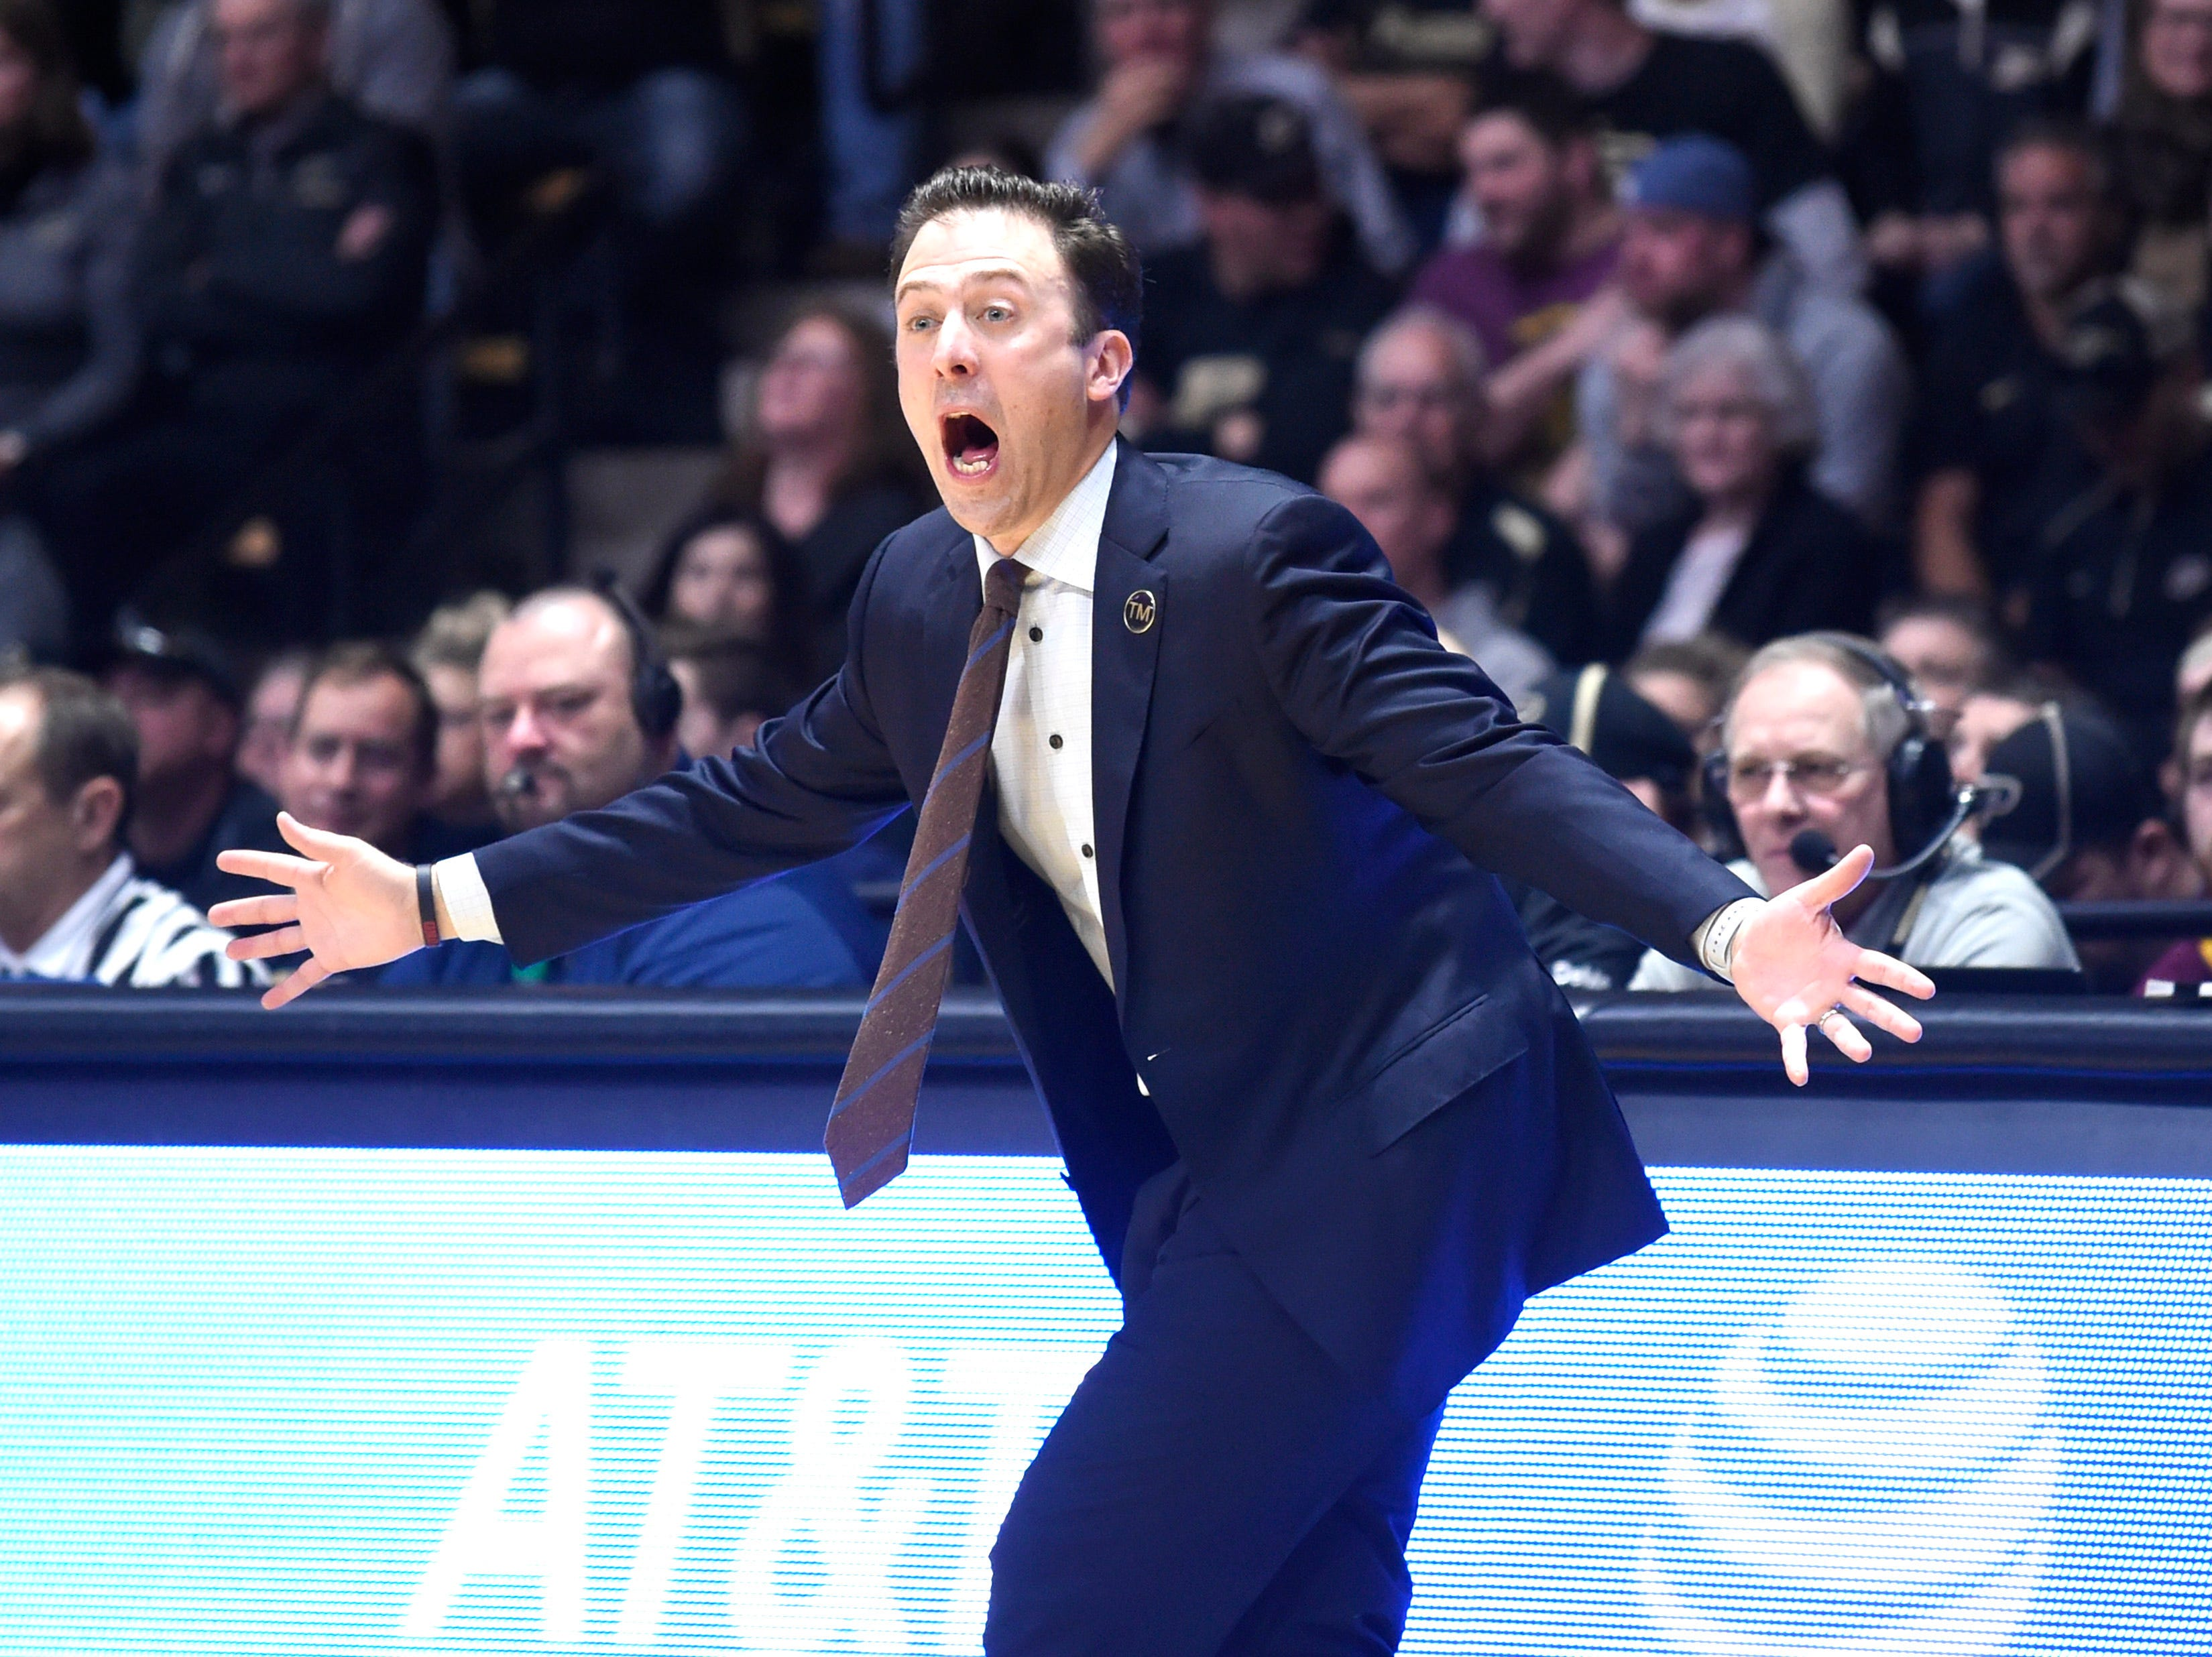 Feb 3, 2019; West Lafayette, IN, USA; Minnesota Golden Gophers head coach Richard Pitino reacts in the game against Purdue Boilermakers in the first half at Mackey Arena. Mandatory Credit: Sandra Dukes-USA TODAY Sports